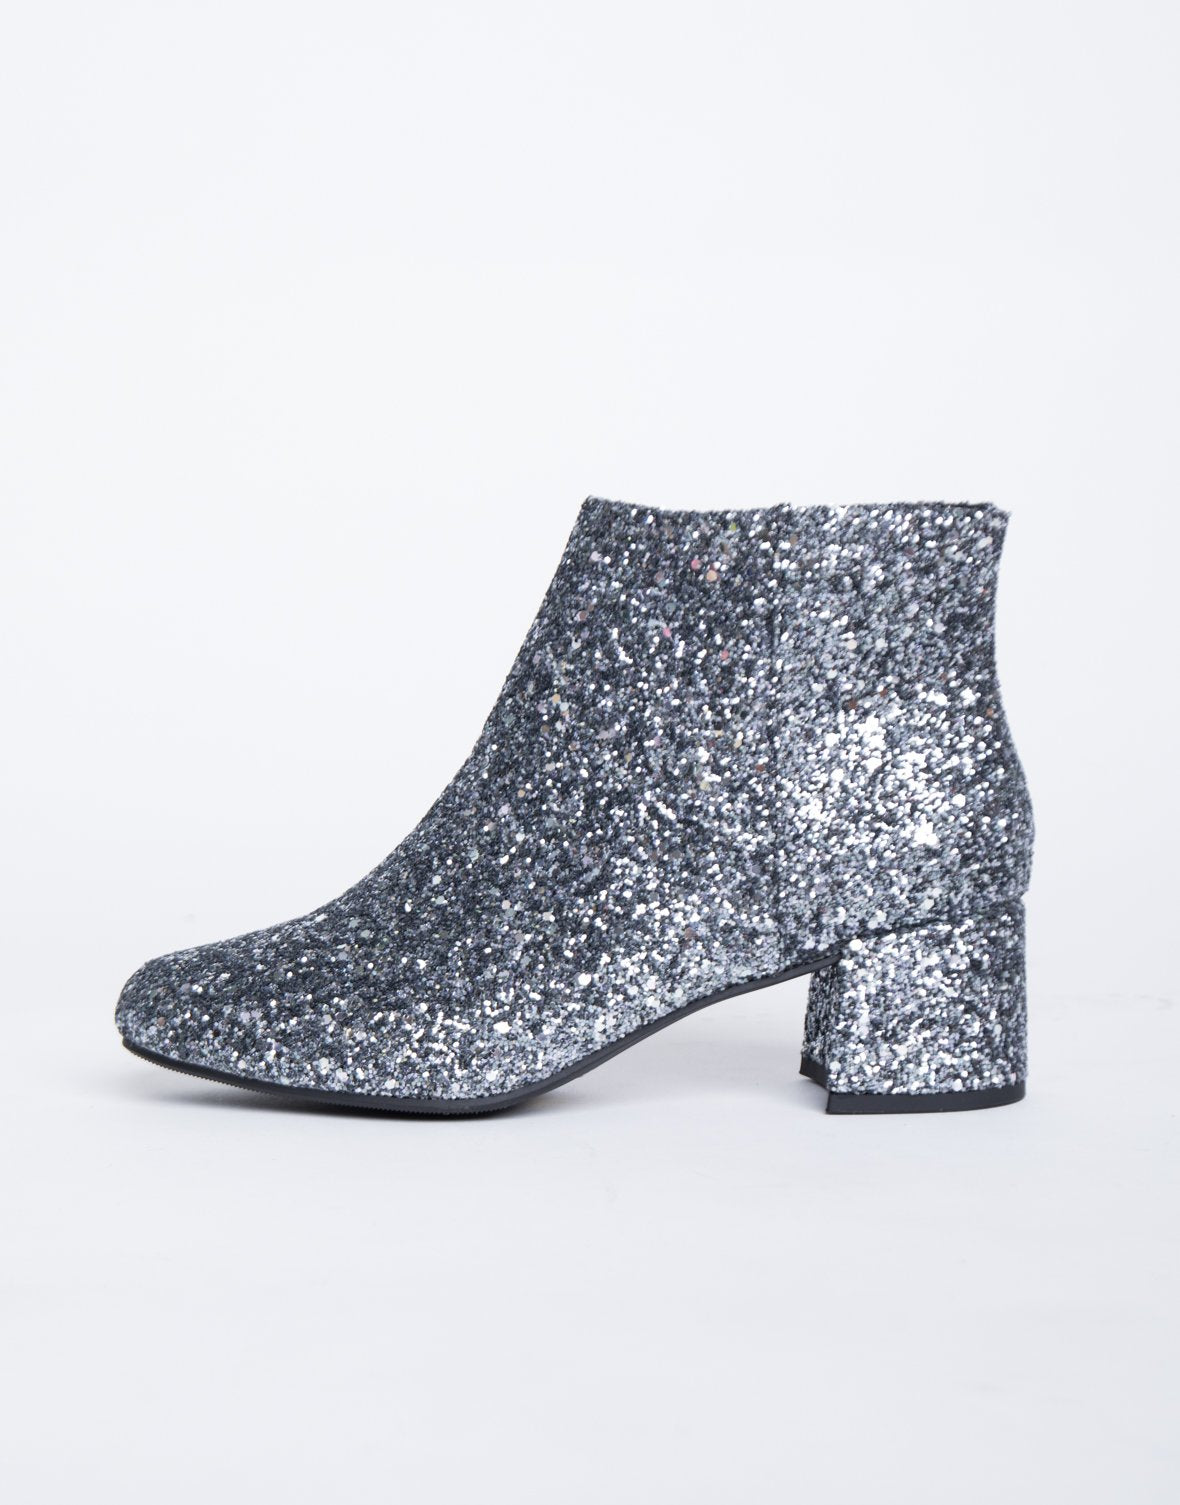 Rockin' Metallic Boots - 2020AVE